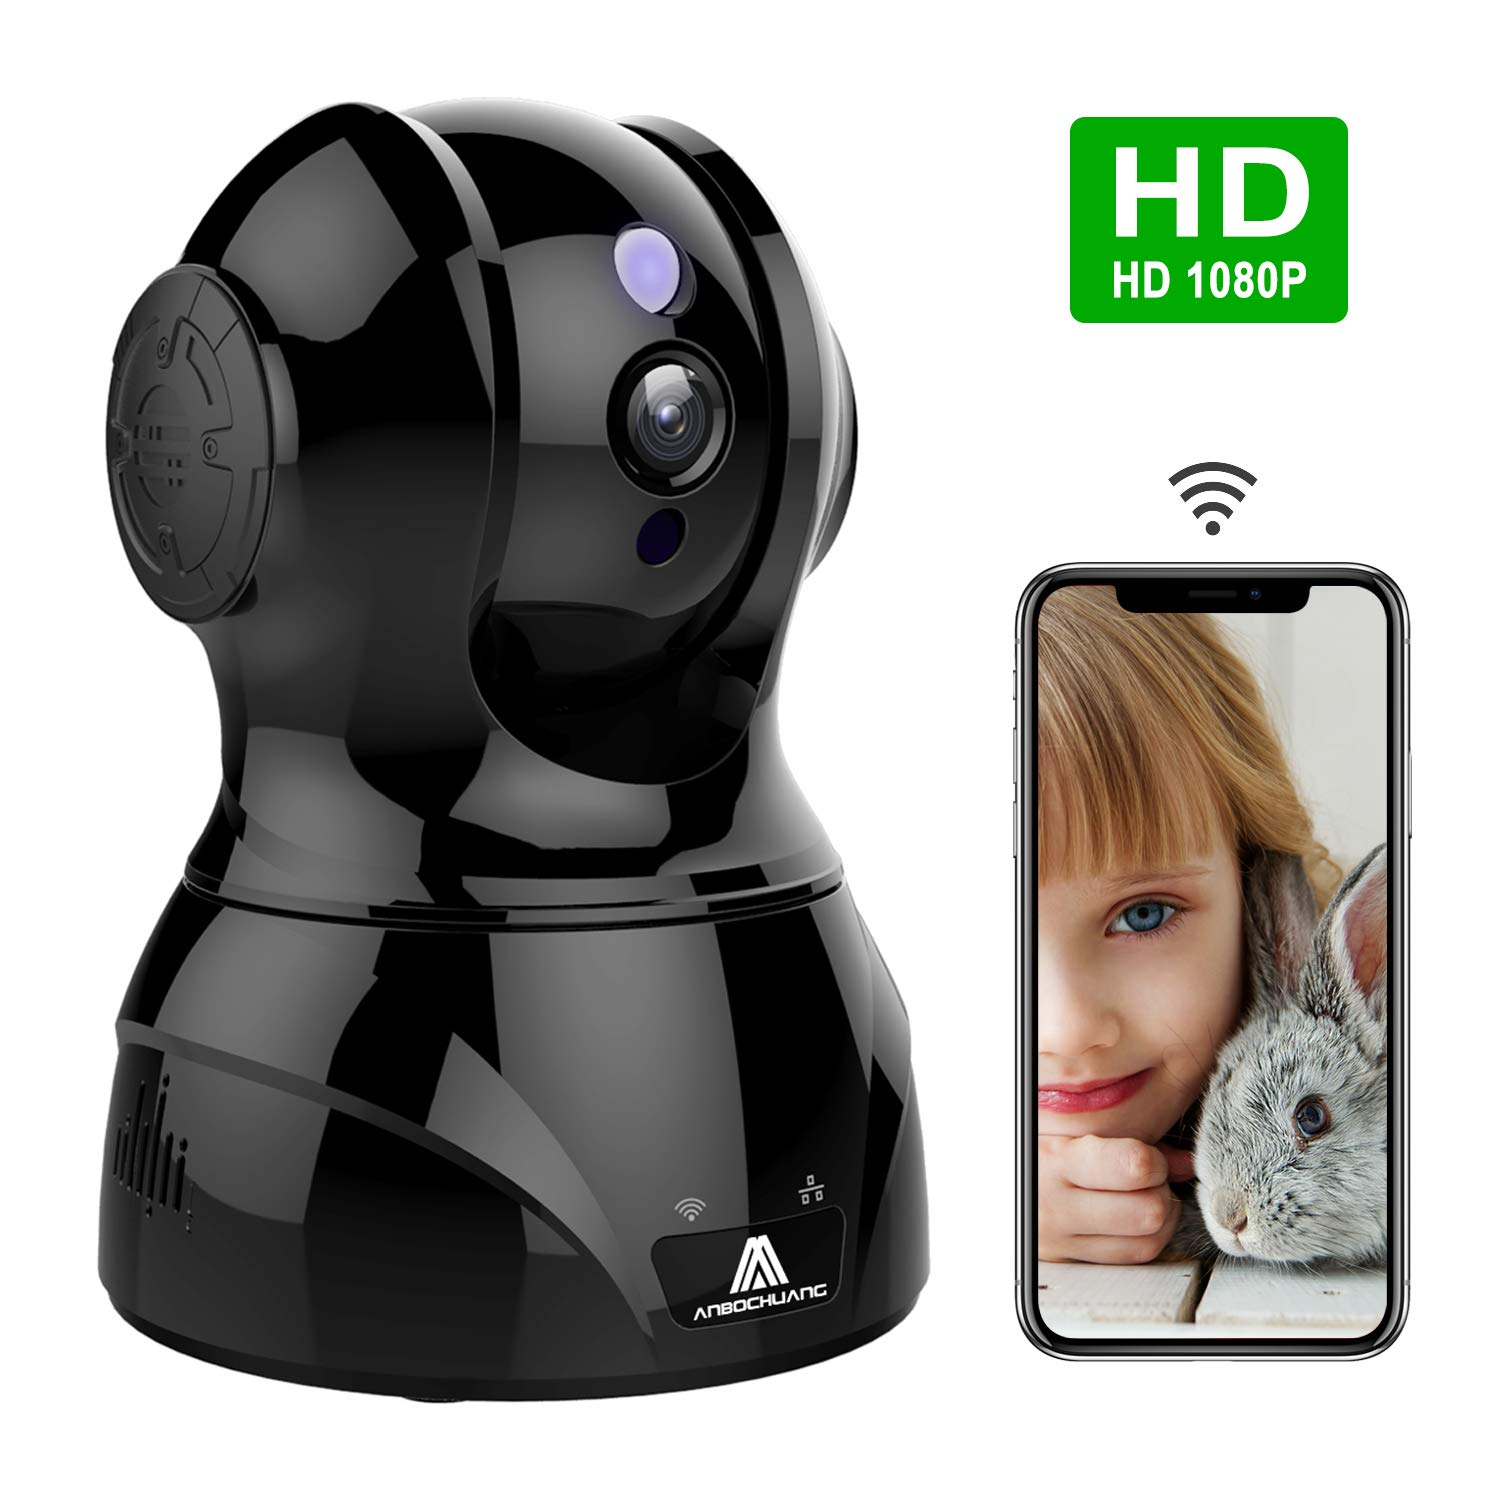 1080P HD Wifi IP Camera, Wireless Security Camera, Baby Monitor with 2-Way  Audio, Night vision Motion Detection,Pan/Tilt/Zoom, Indoor Home Monitor for